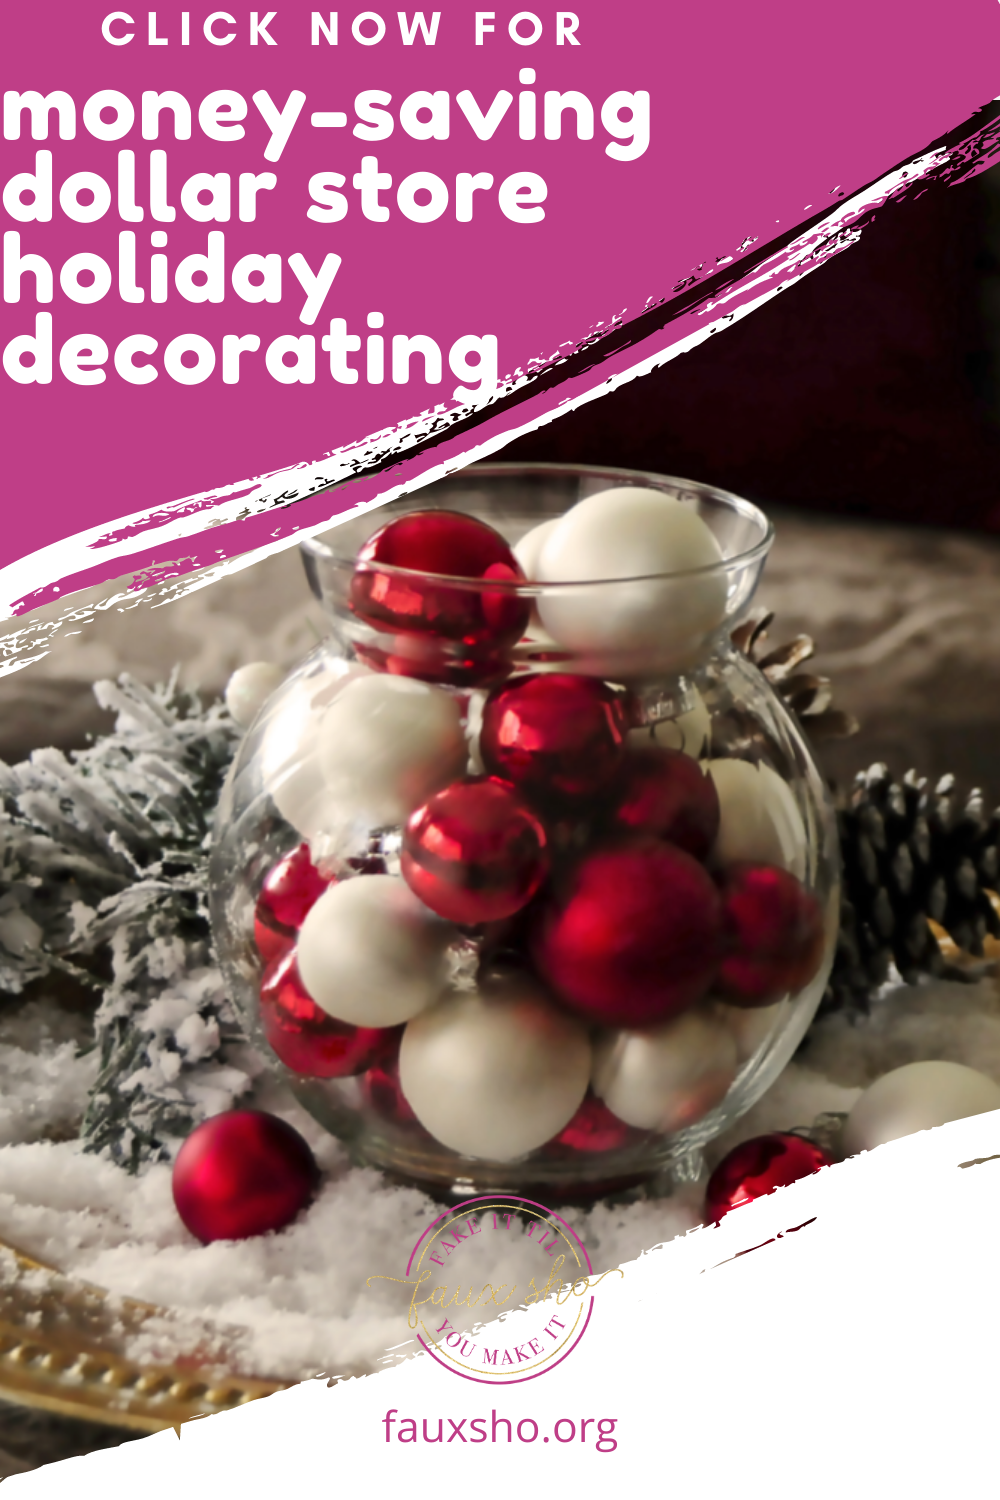 If you want to update your holiday decor without spending your whole paycheck? Then you've got to read our post on DIY Dollar Store Christmas Decorations! #FauxShoBlog #DIYDollarStoreDecorations #DIYChristmasDecorations #DIYHolidayDecoration #DollarStoreChristmasDecorations #holidaydecoratons